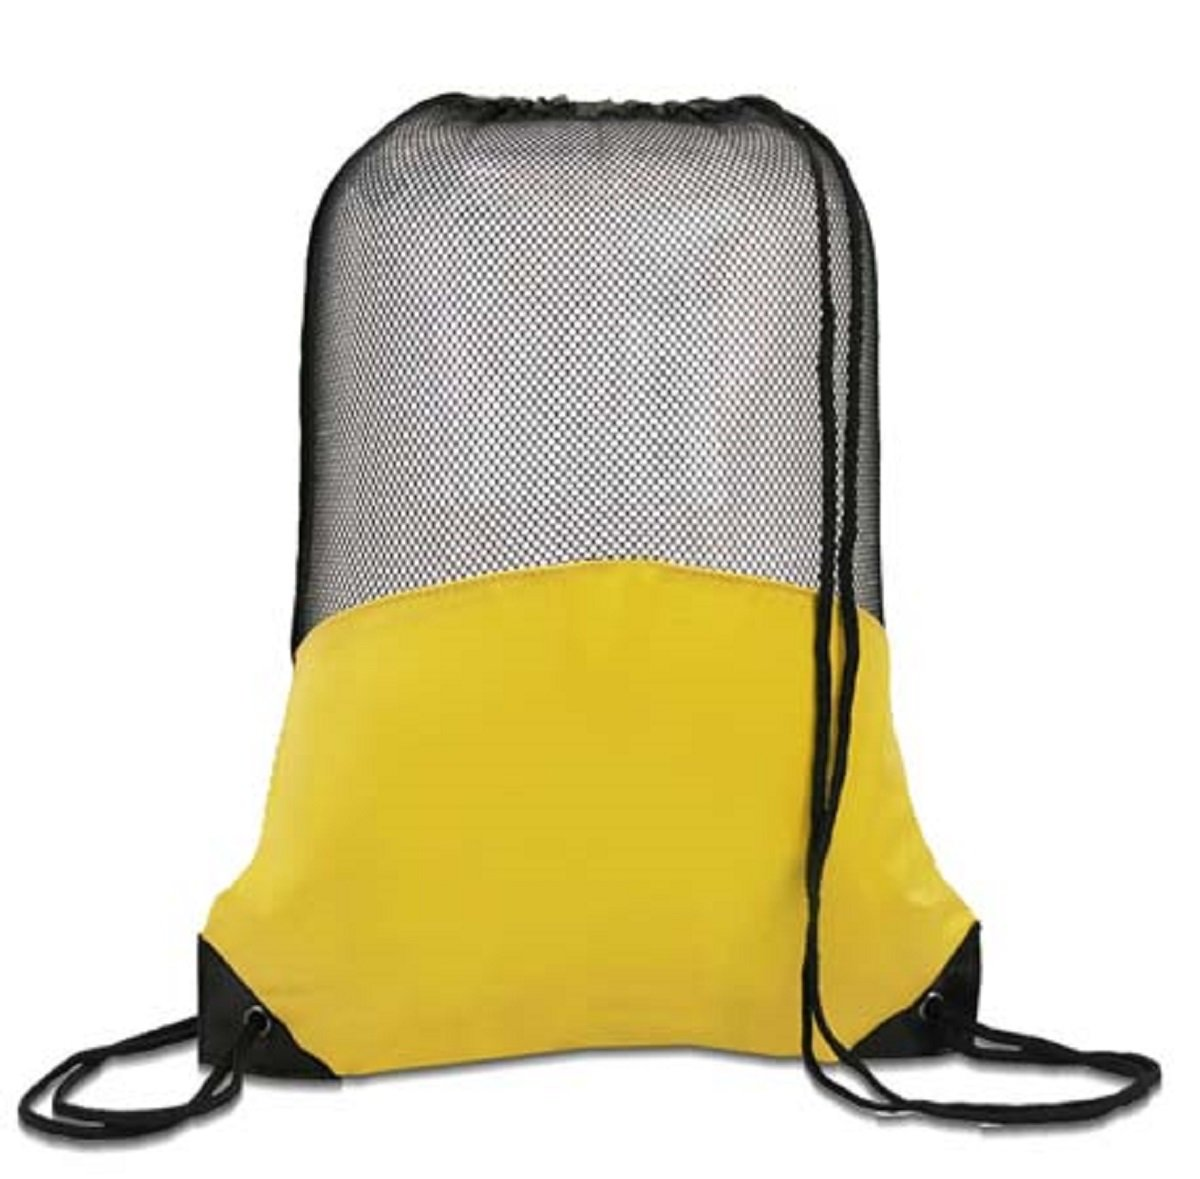 MESH BACKPACK, Yellow, Case of 60